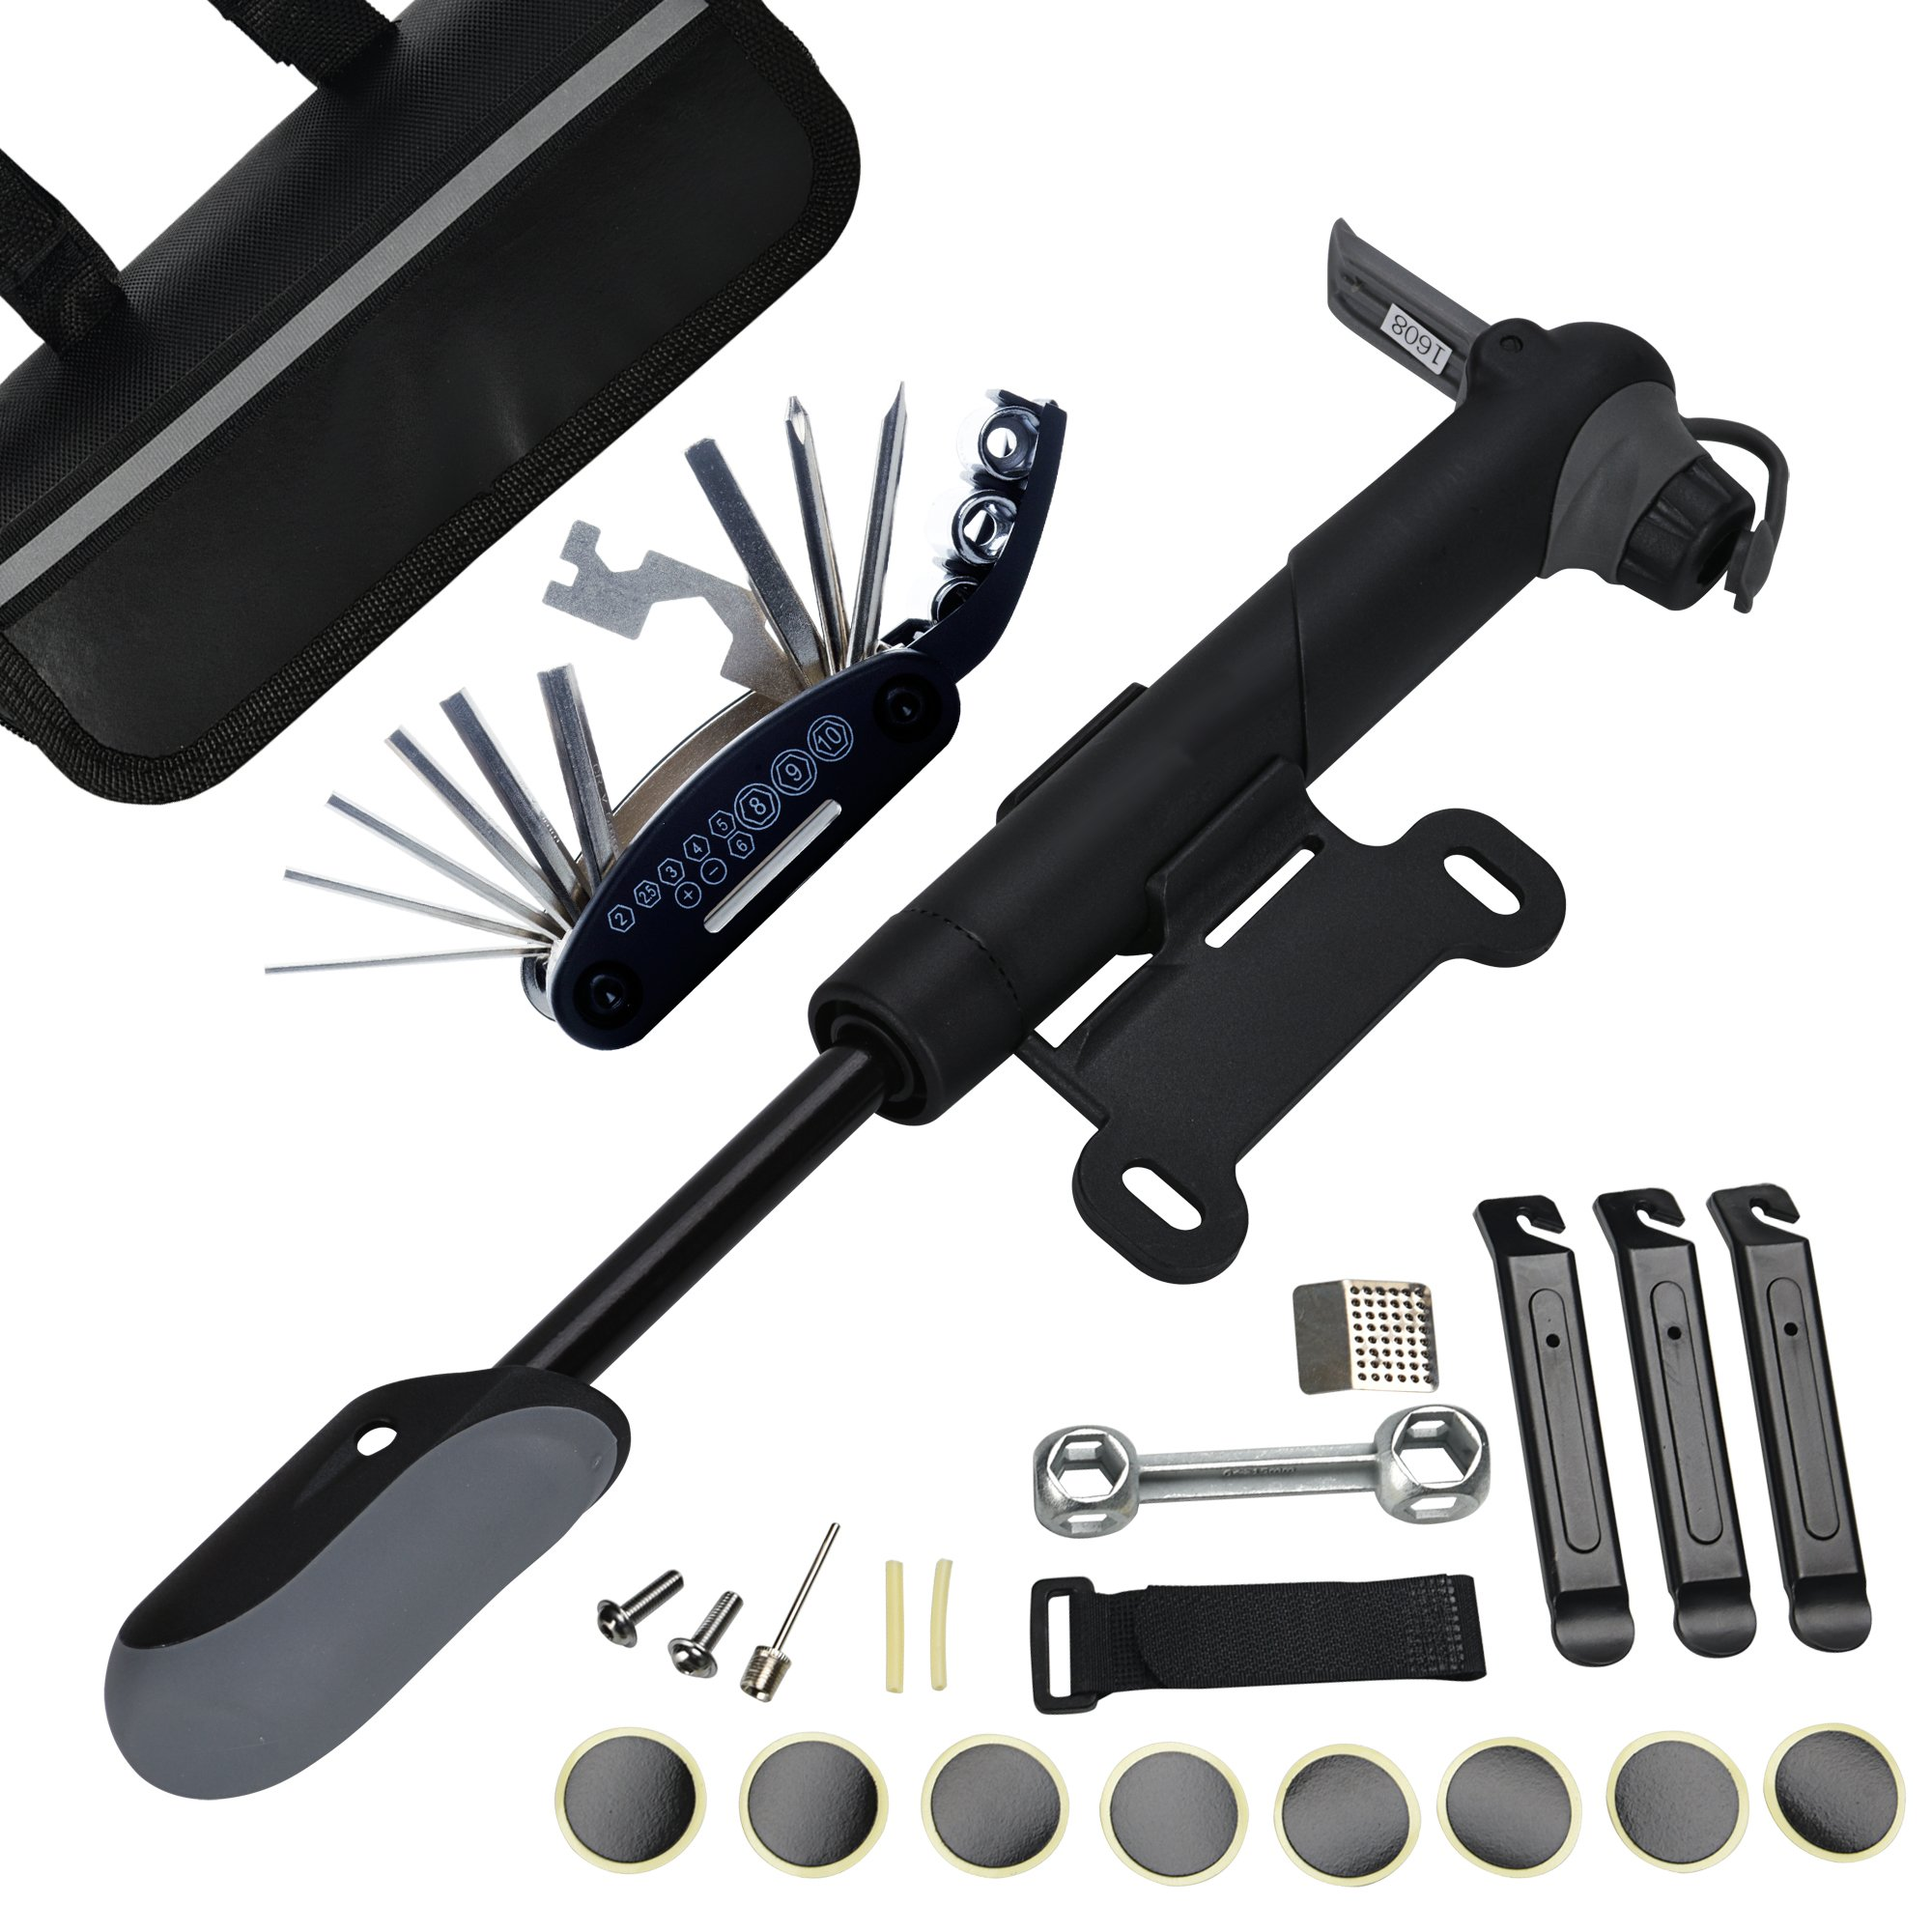 DAWAY A35 Bike Repair Kit - 120 PSI Mini Pump & 16 in 1 Bicycle Multi Tool with Handy Bag Included Glueless Tire Tube Patches & Tire Levers by DAWAY (Image #1)